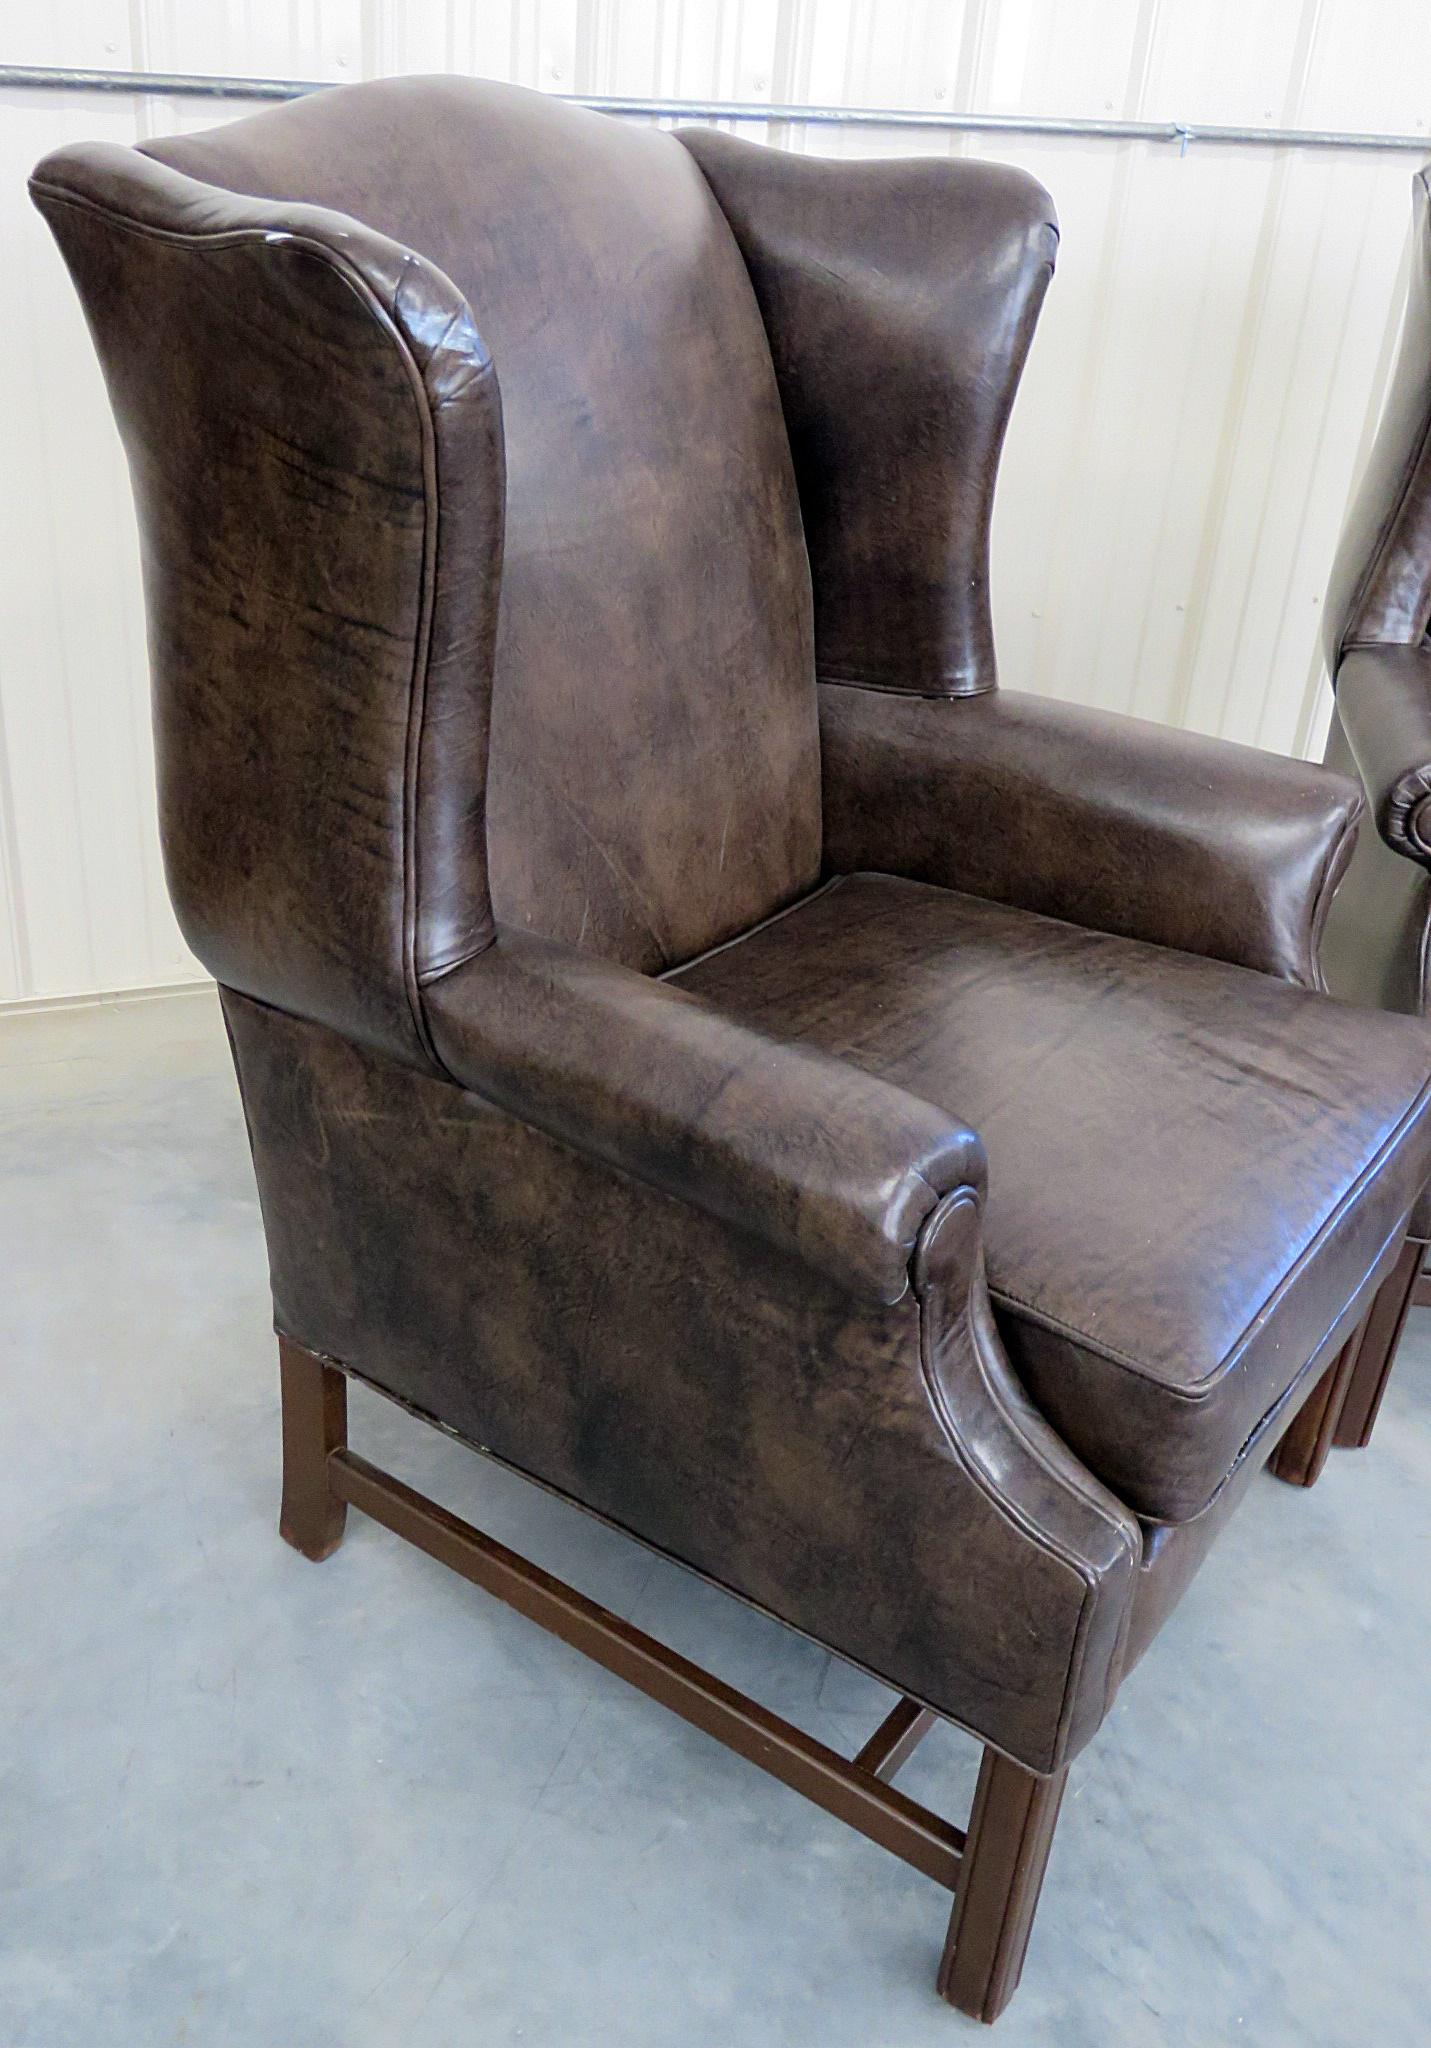 leather wing chairs chaise lounge patio chair exceptional pair of ethan allen wingback decaso brown for sale image 8 11